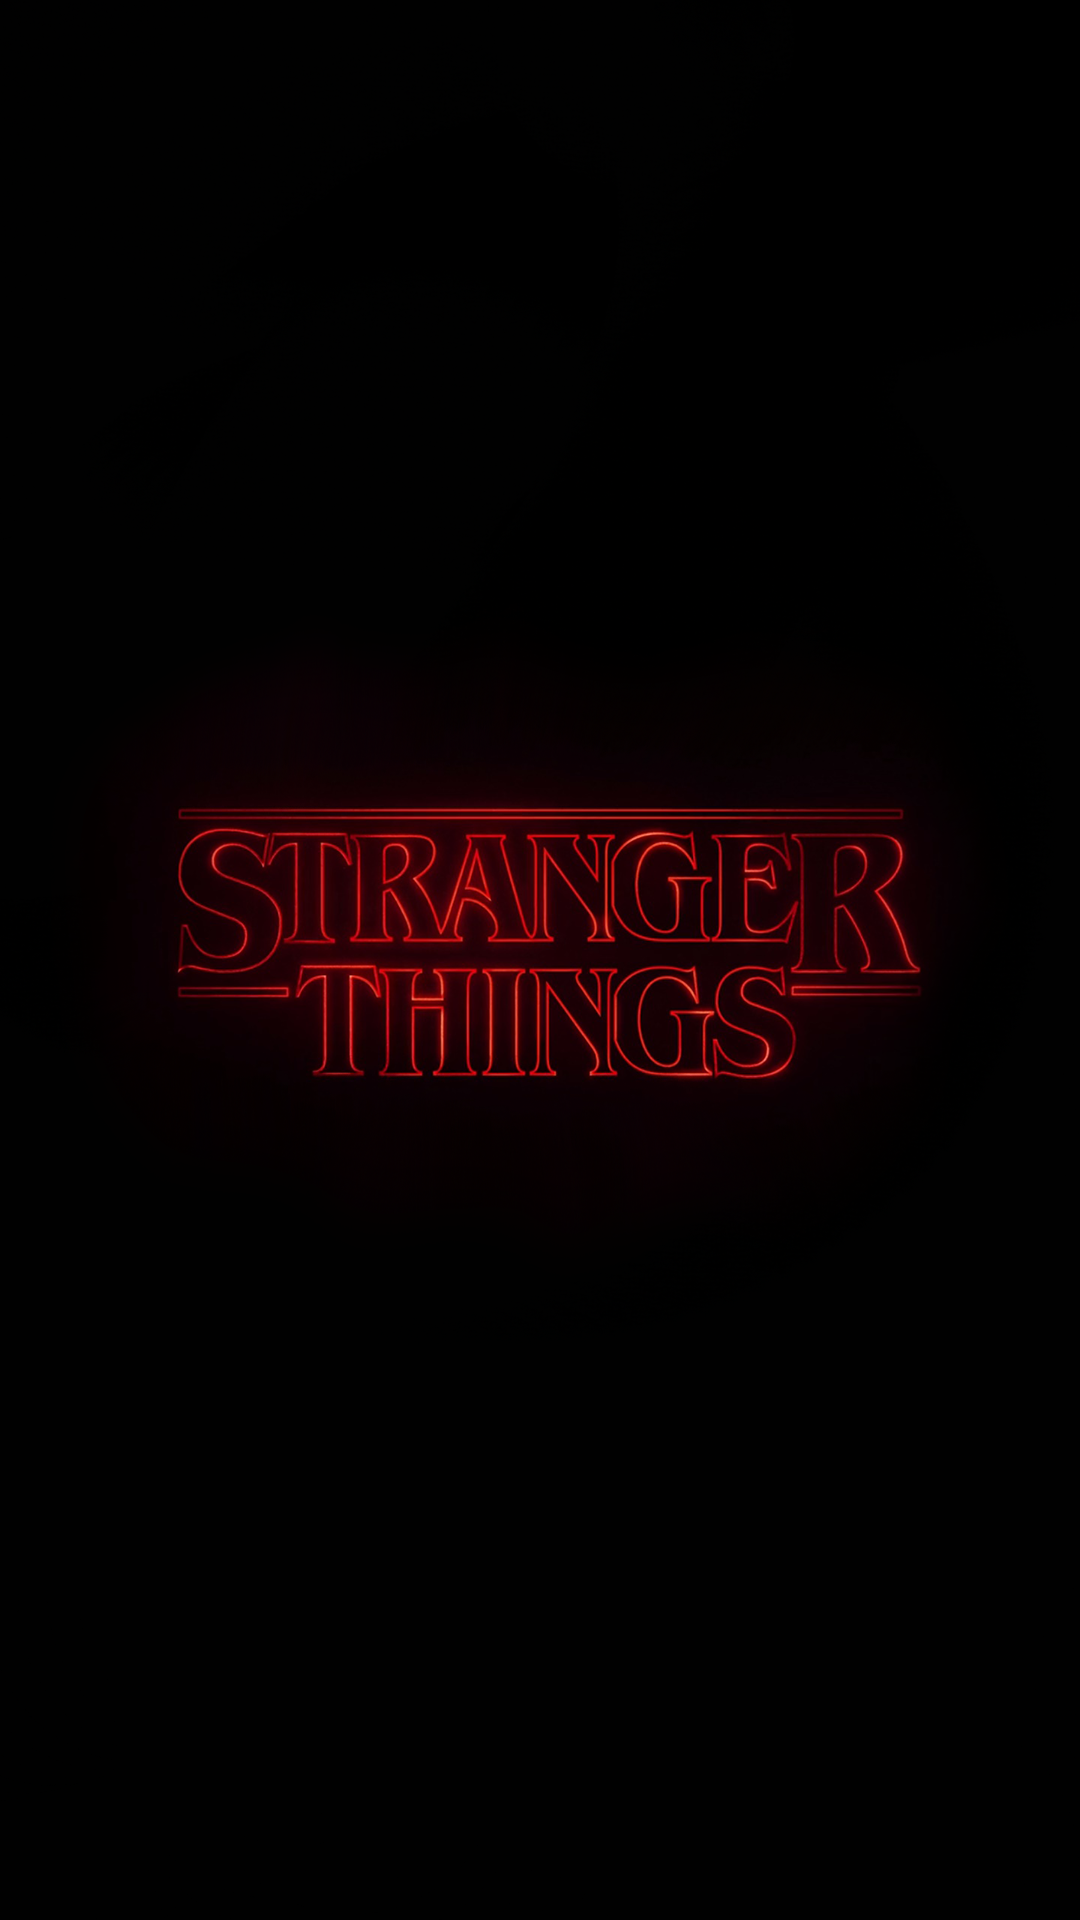 Stranger things hd wallpapers for iphone 7 wallpapers stranger things wallpaper and lockscreen iphone 7 download 0 voltagebd Gallery